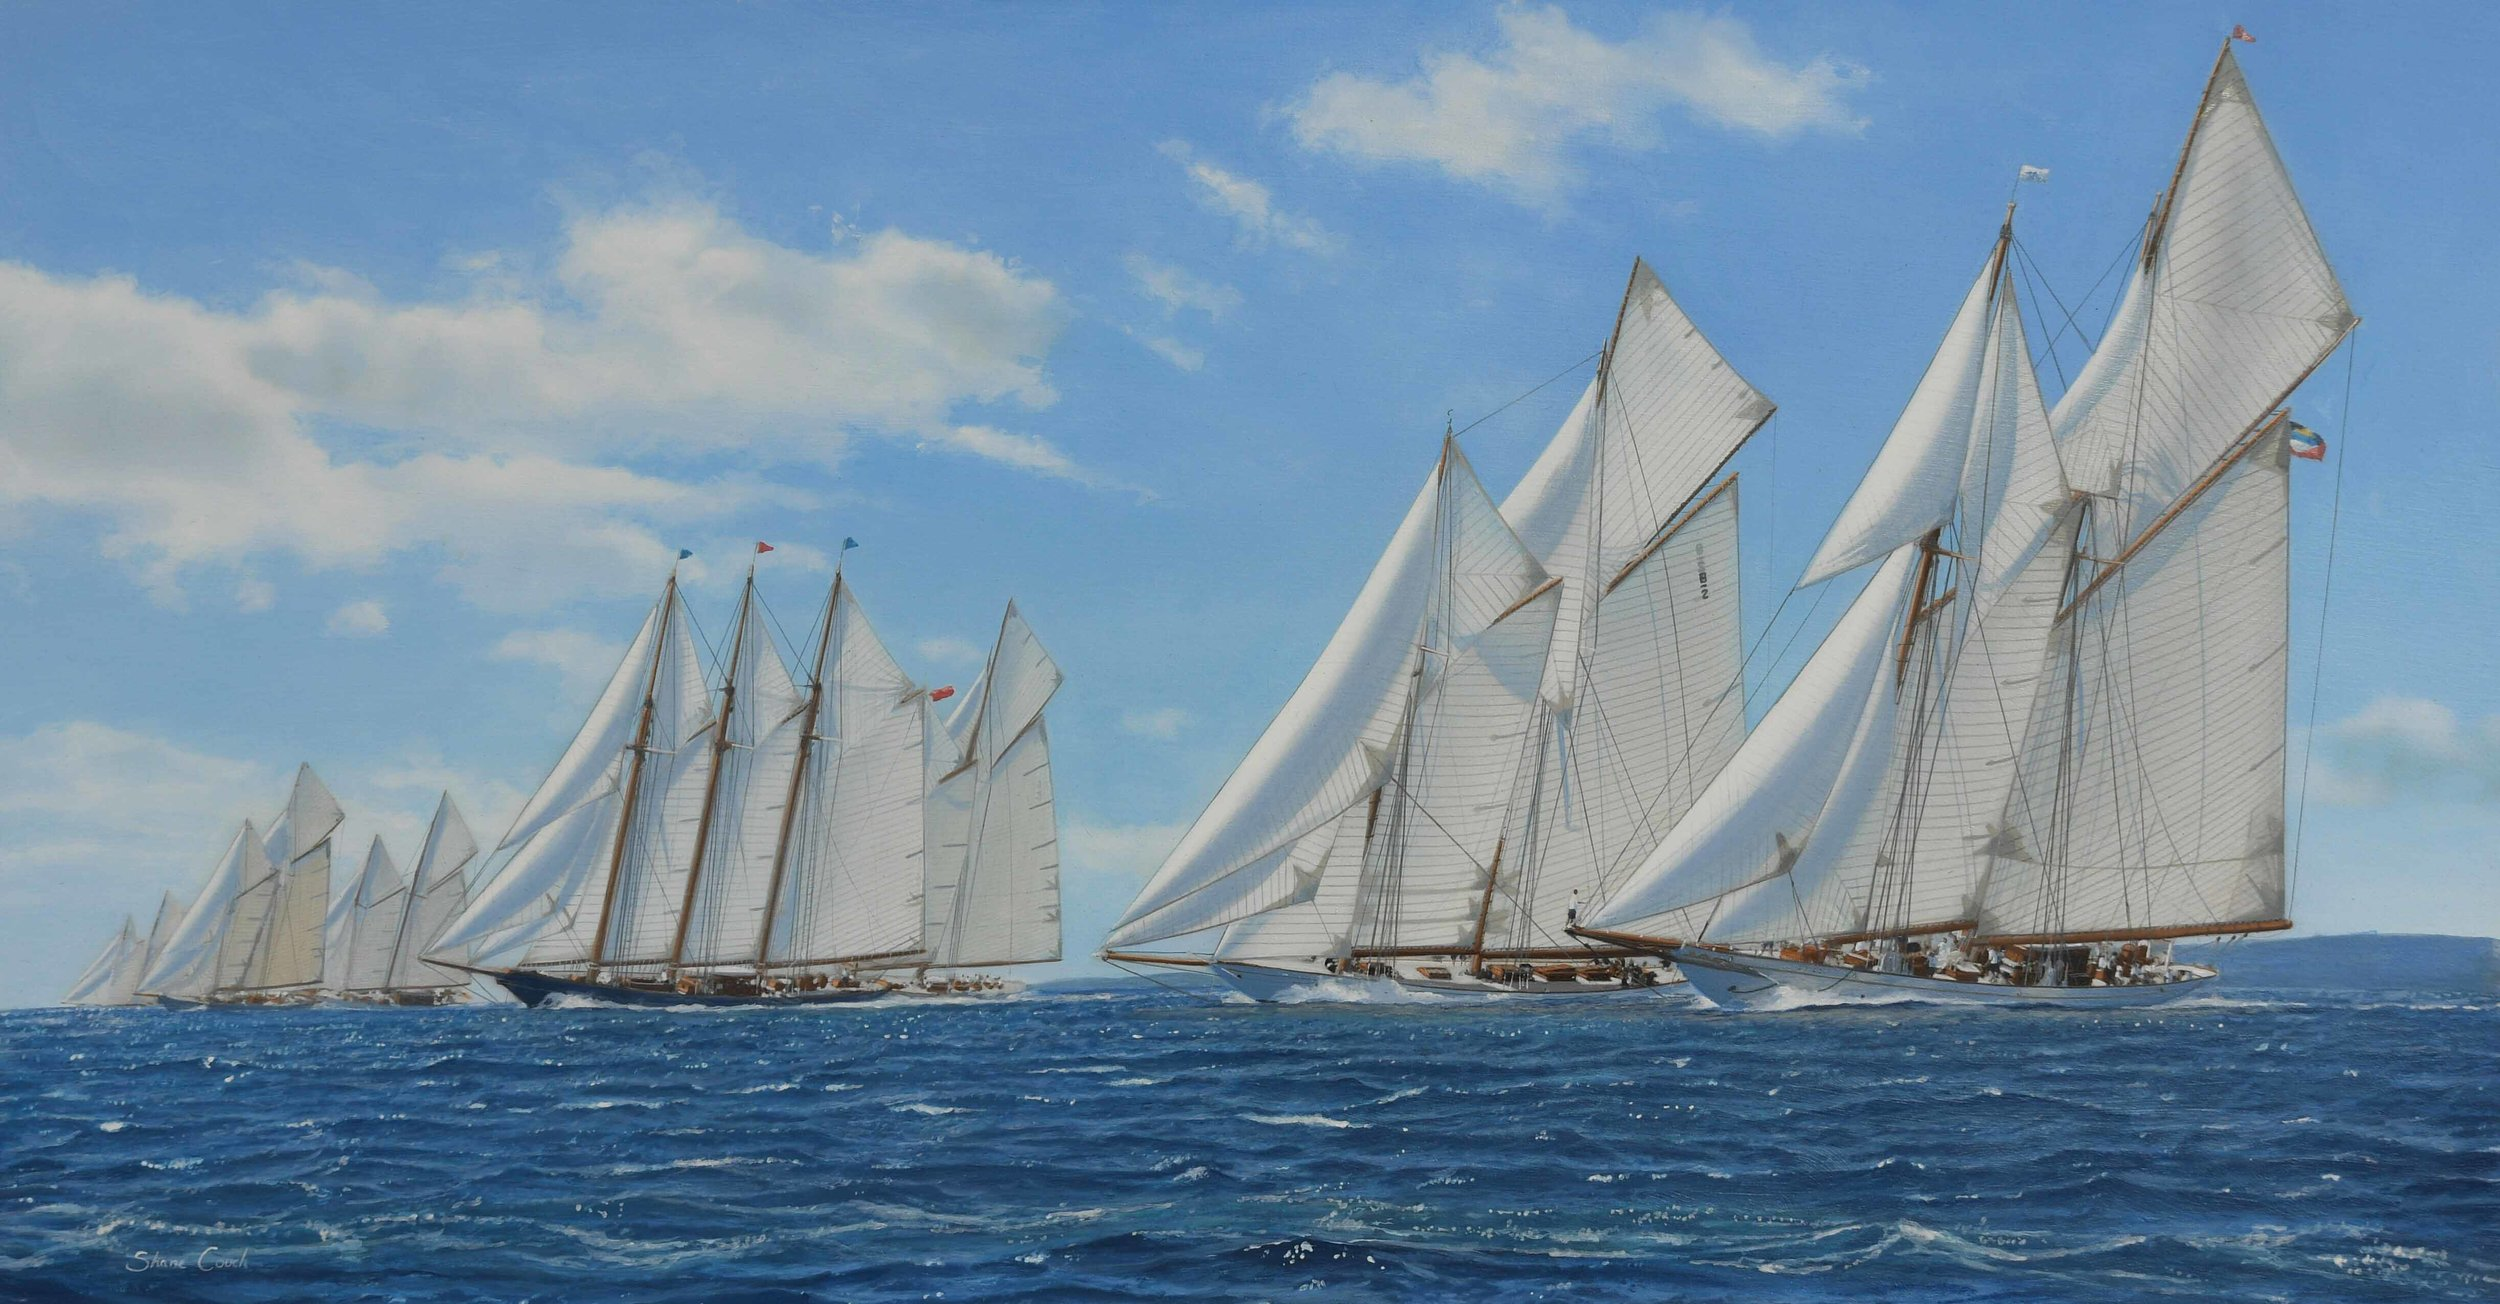 The Great Schooner race Palma 2016